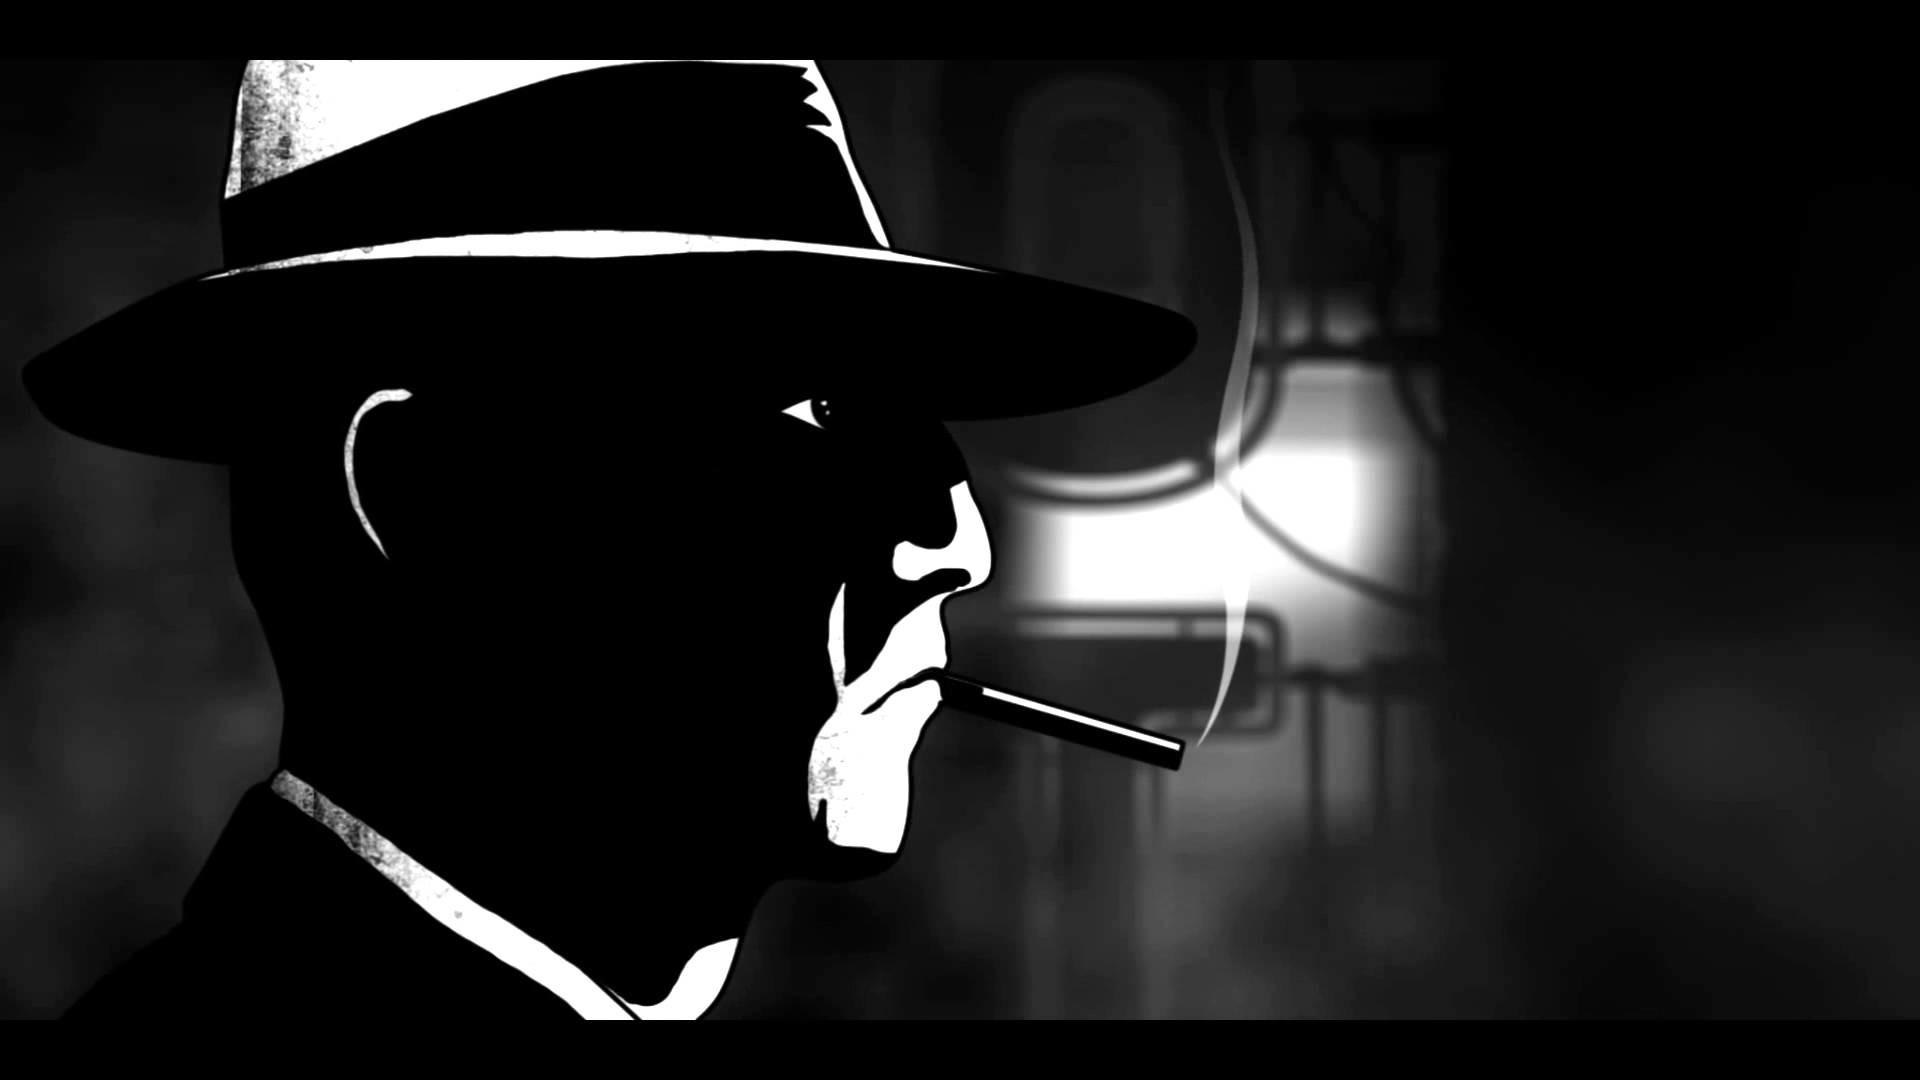 Animation excerpt from The Noir Project – YouTube